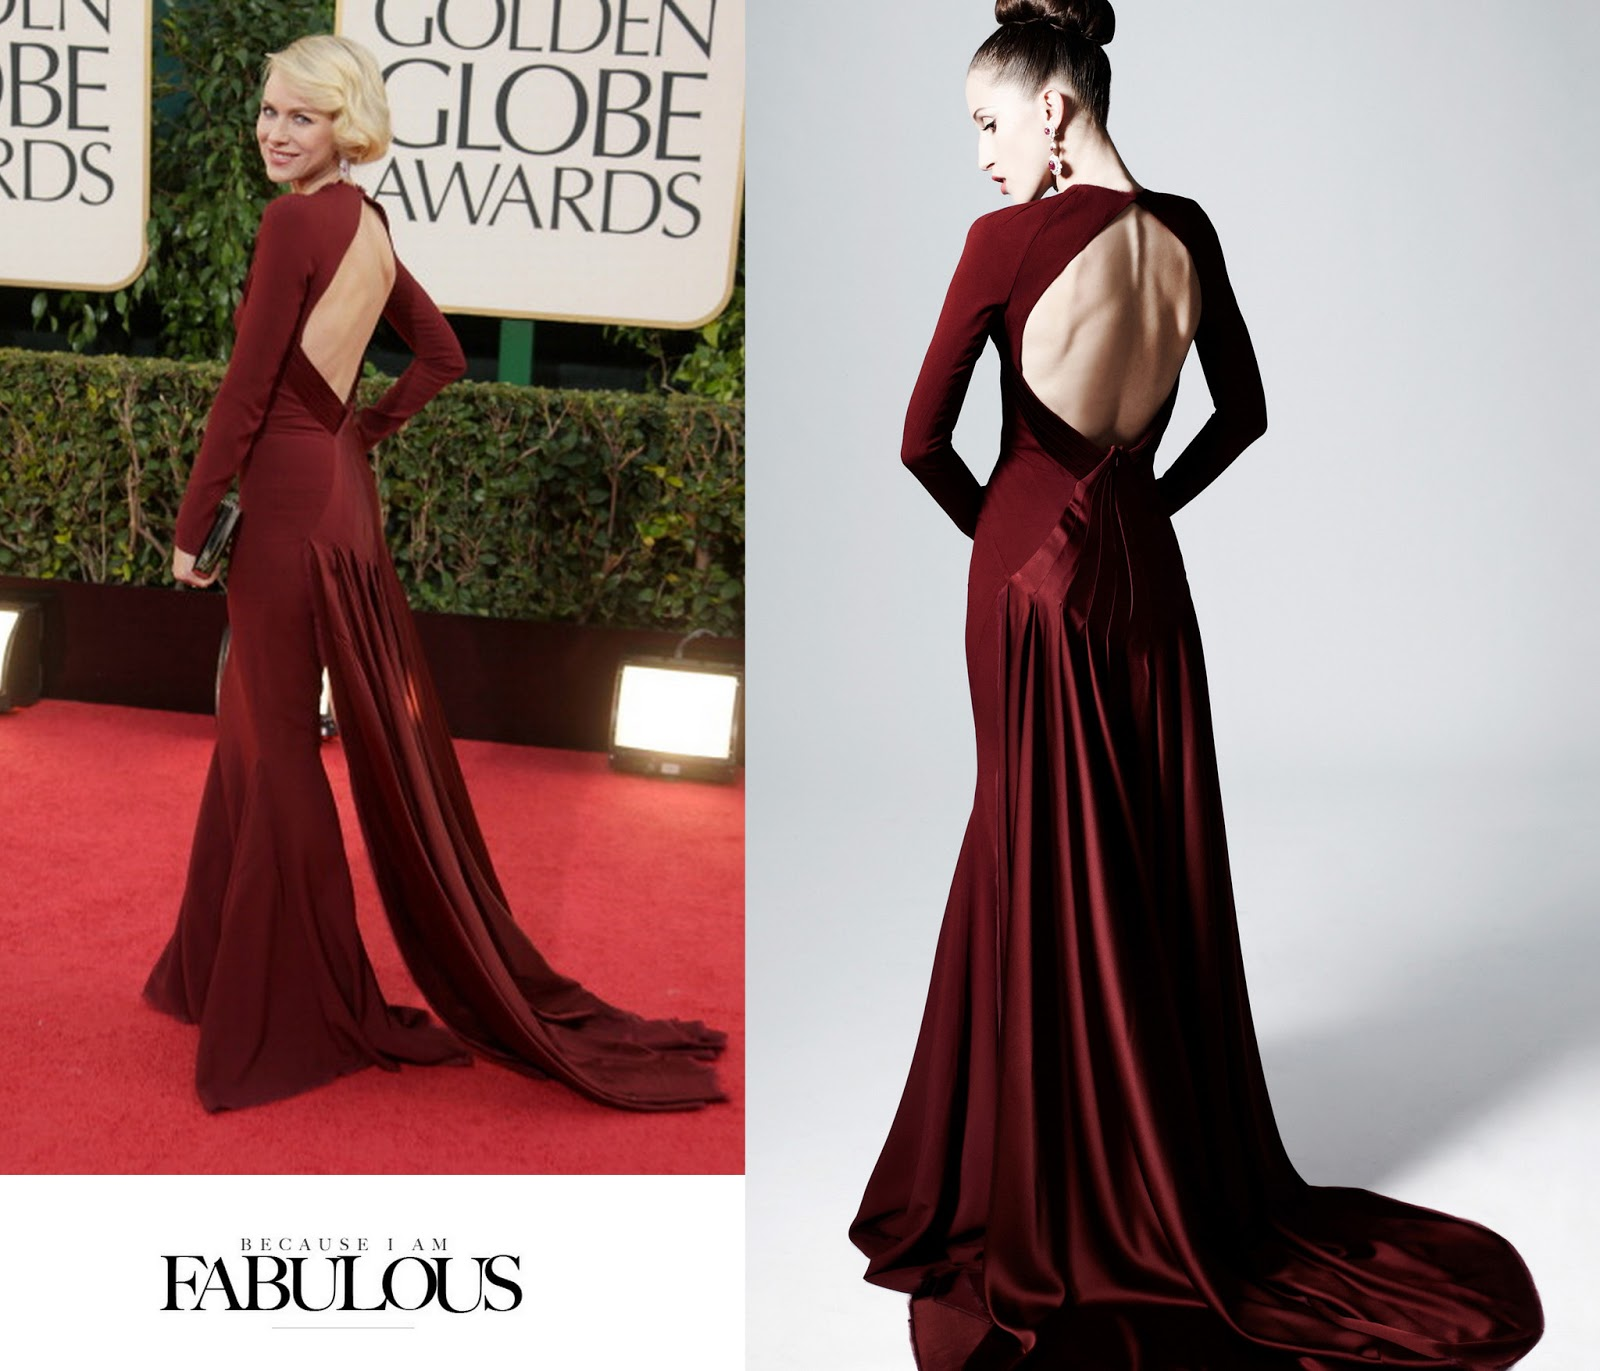 http://3.bp.blogspot.com/-0vQScf6Vgvg/UPPe_RDI6pI/AAAAAAABdpw/Wvug4P4GZpk/s1600/Naomi-Watts-2013-Golden-Globes-Awards-Dress-Zac-Posen-best-dressed1.jpg